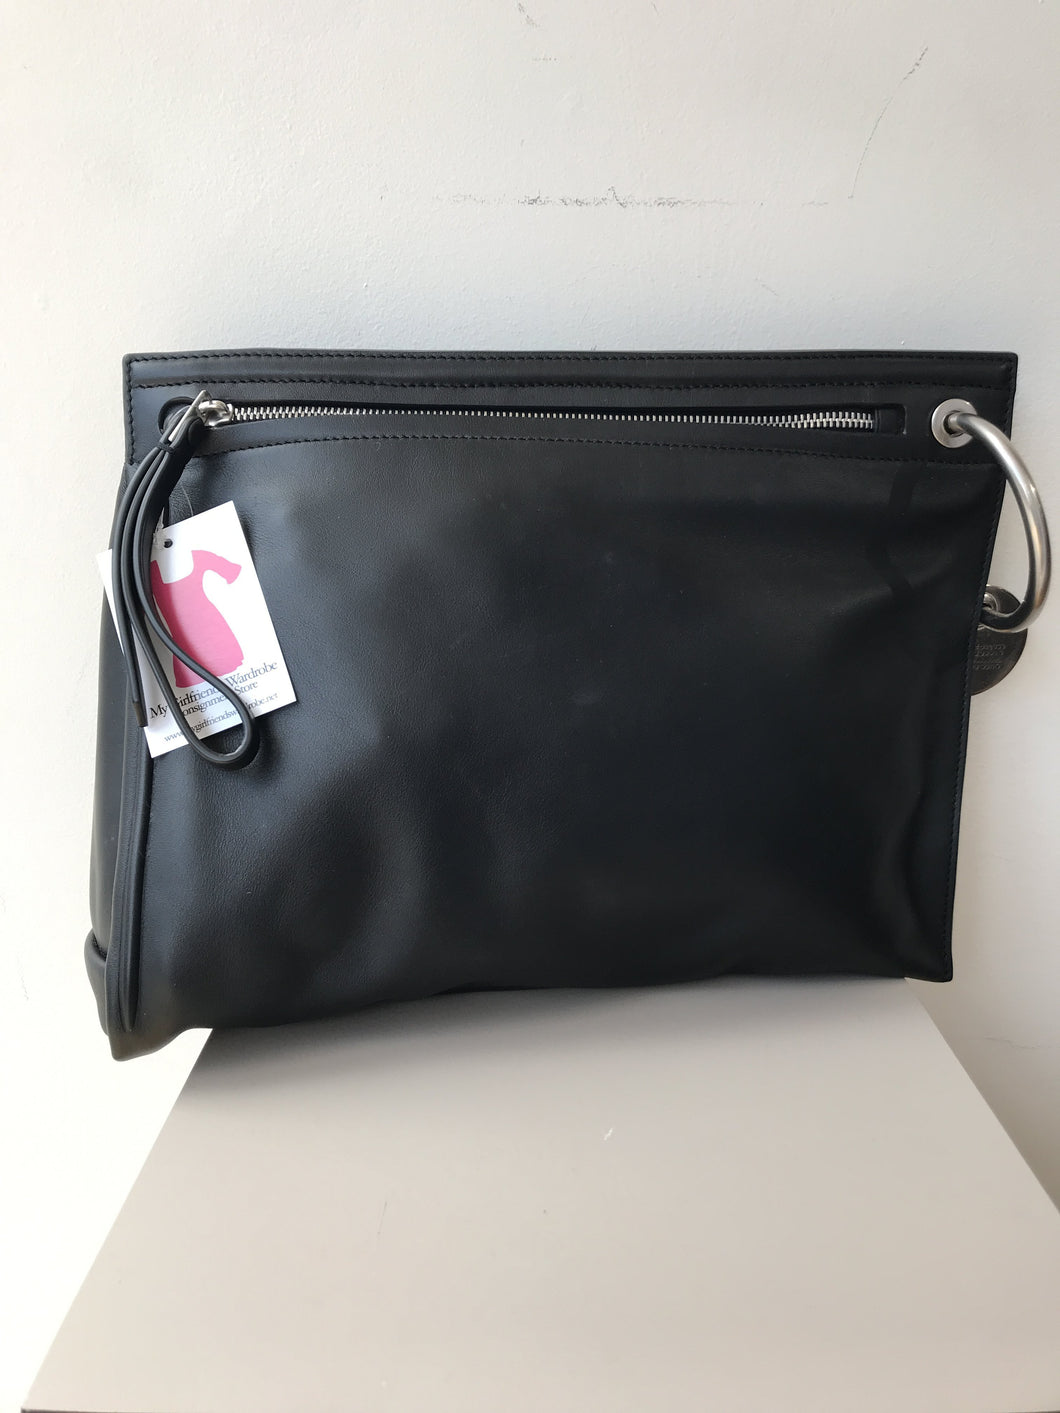 Marc by Marc Jacobs black clutch retail $498 - My Girlfriend's Wardrobe York Pa